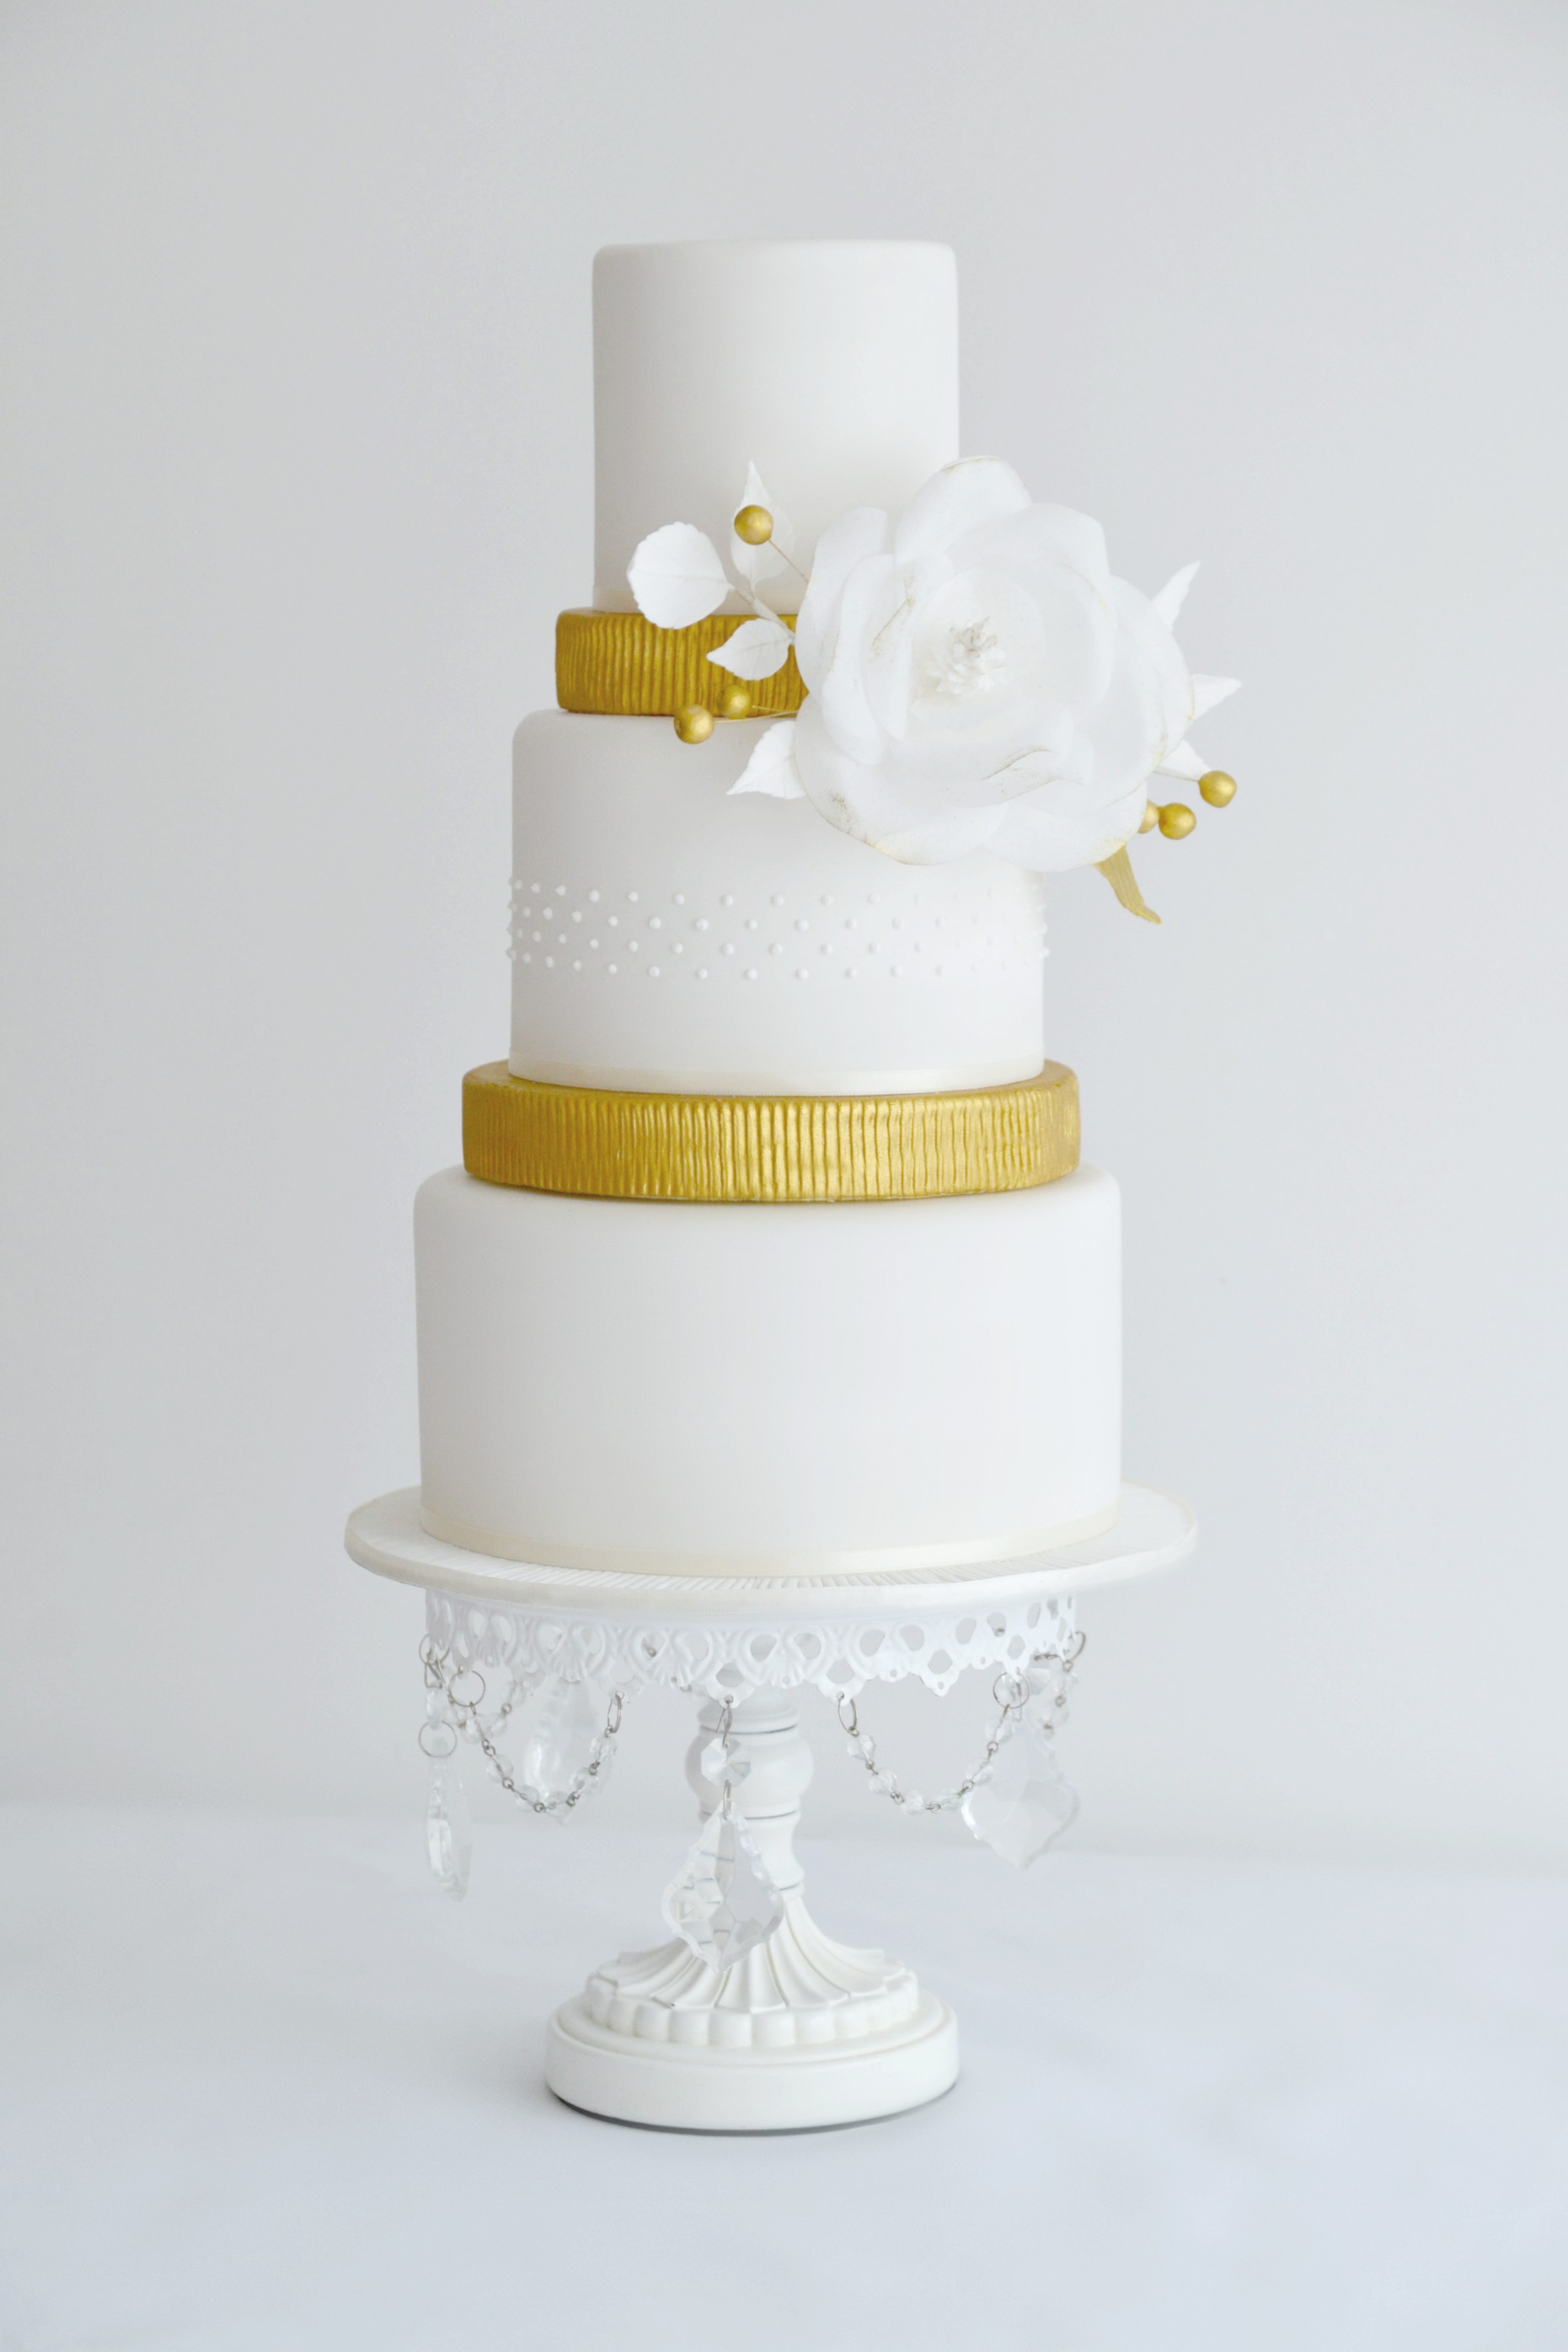 3 Tier white and gold wedding cake